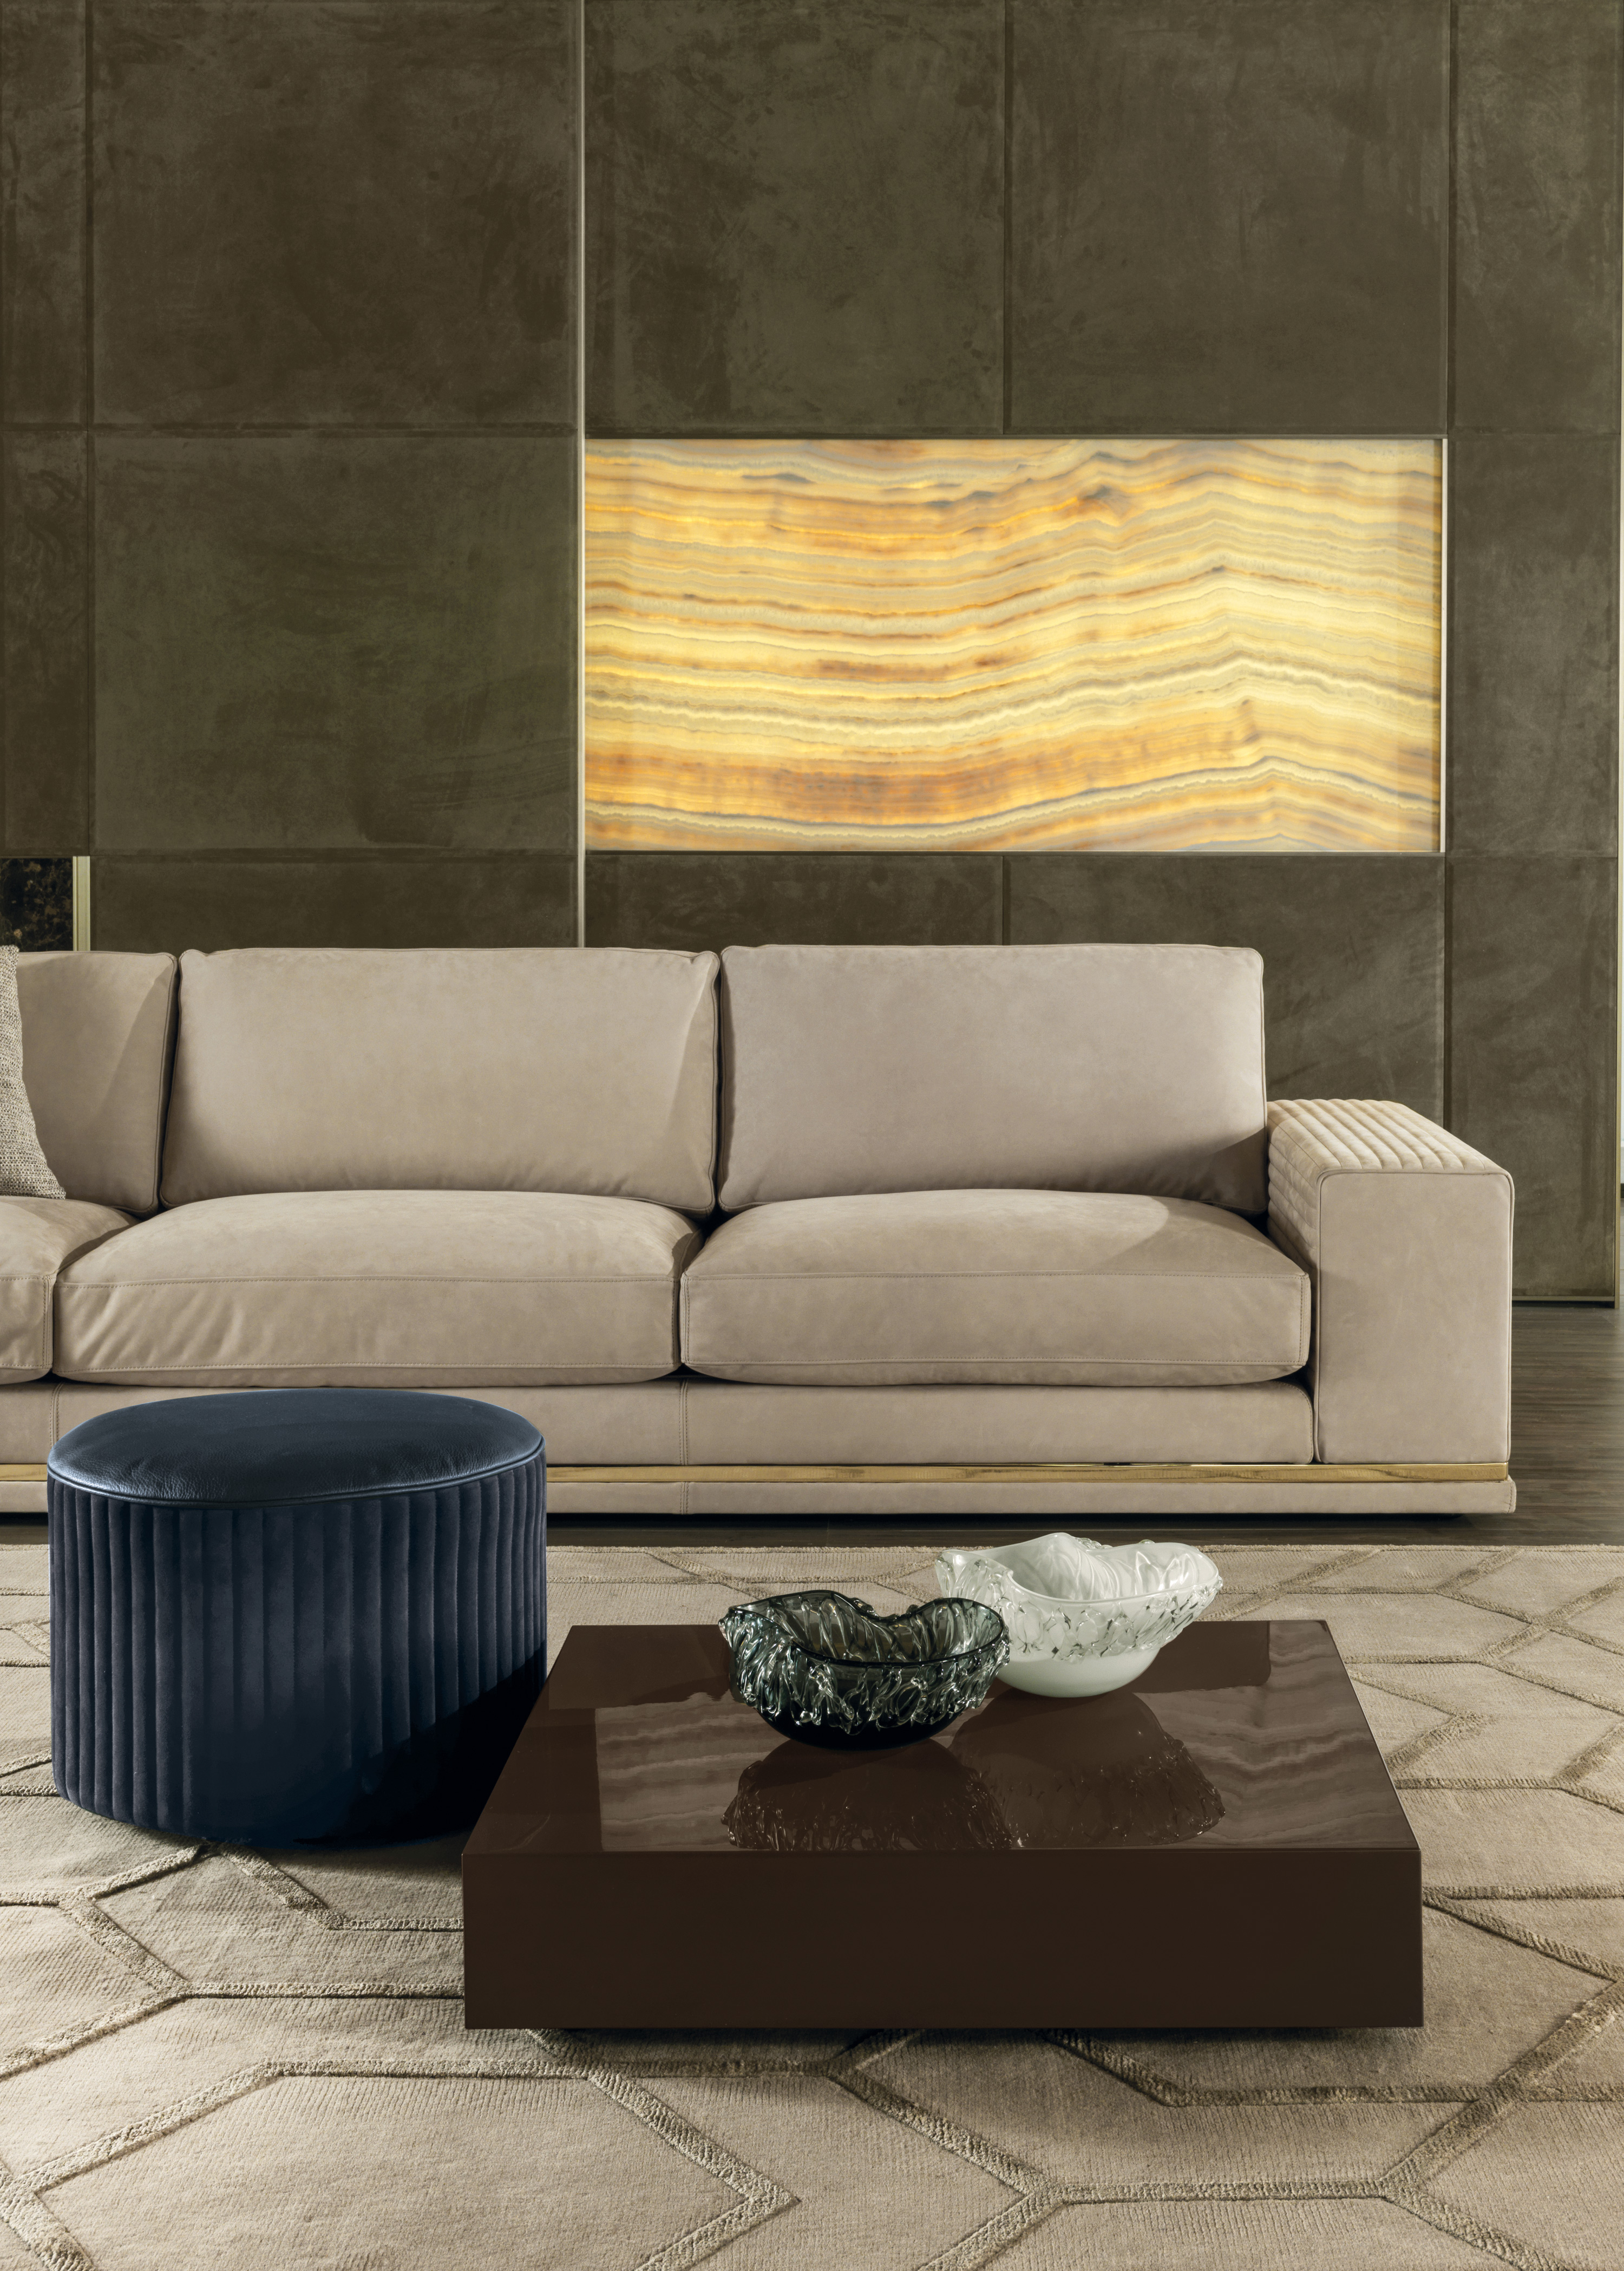 Cohen Down 2 Piece Sectionals Regarding Latest Cohen High End Italian Sofa – Italian Designer & Luxury Furniture At (Gallery 15 of 20)